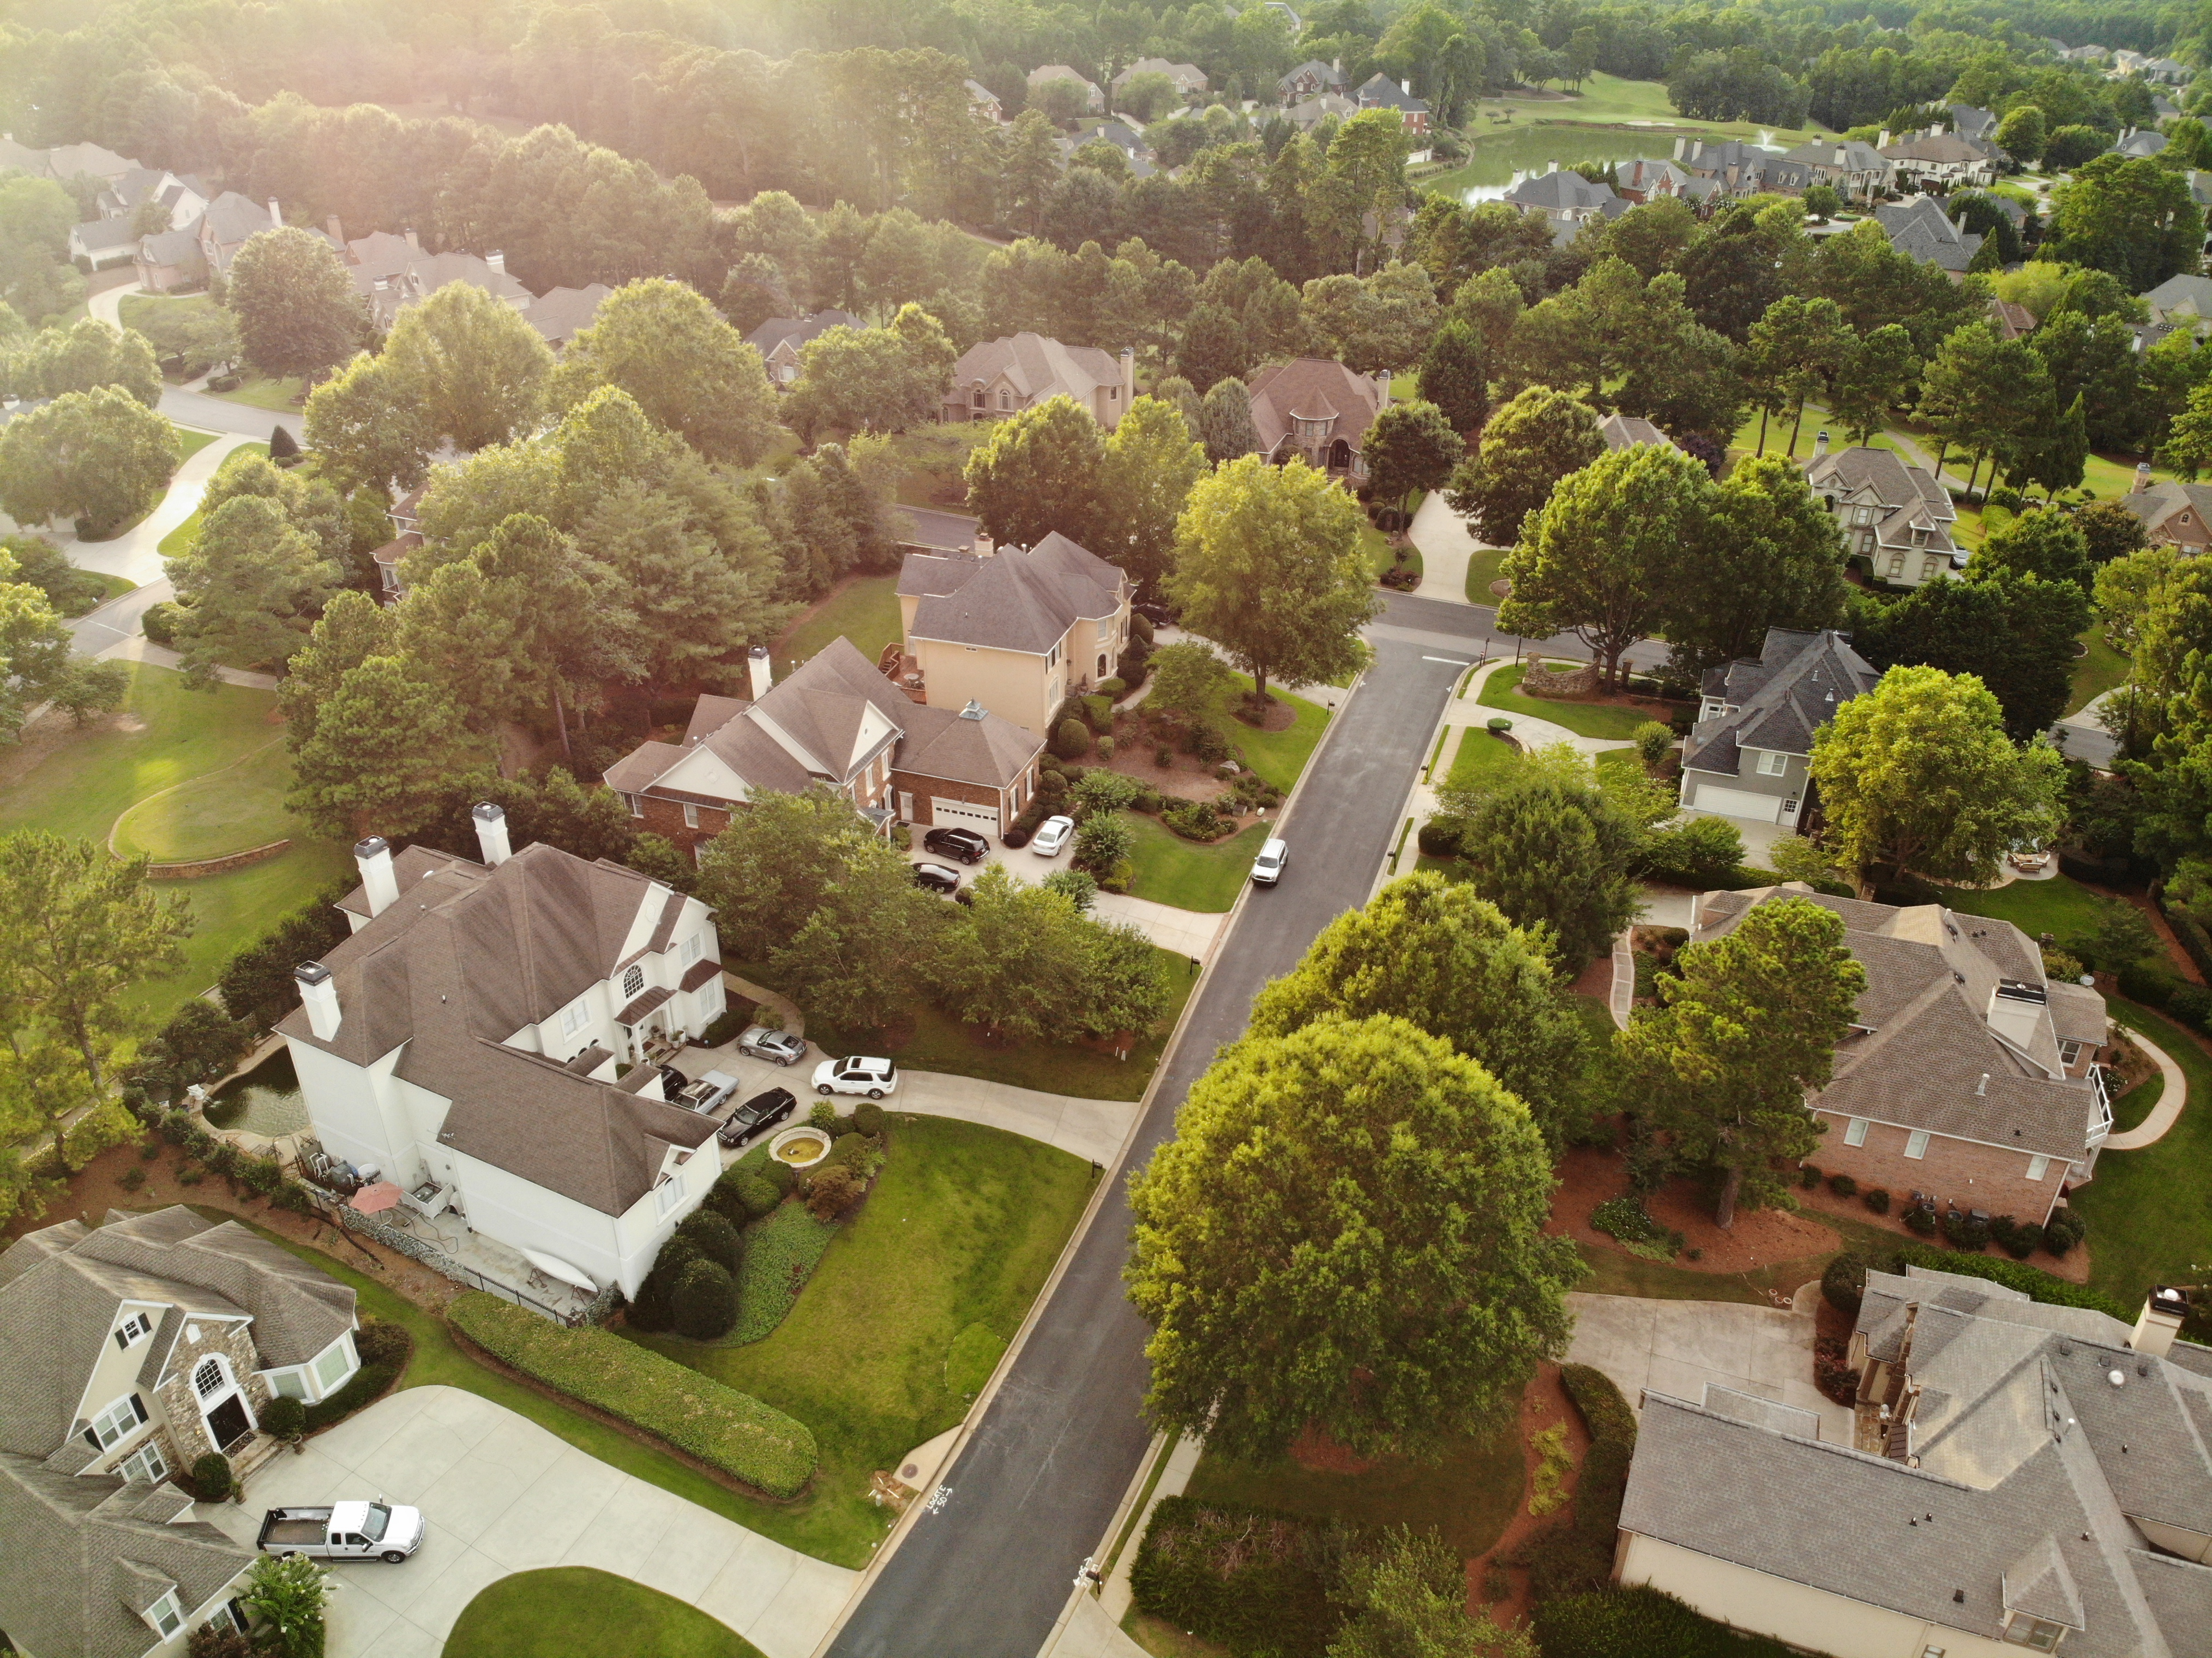 Aerial view of a residential neighborhood, large homes surrounded by big green trees and yards.